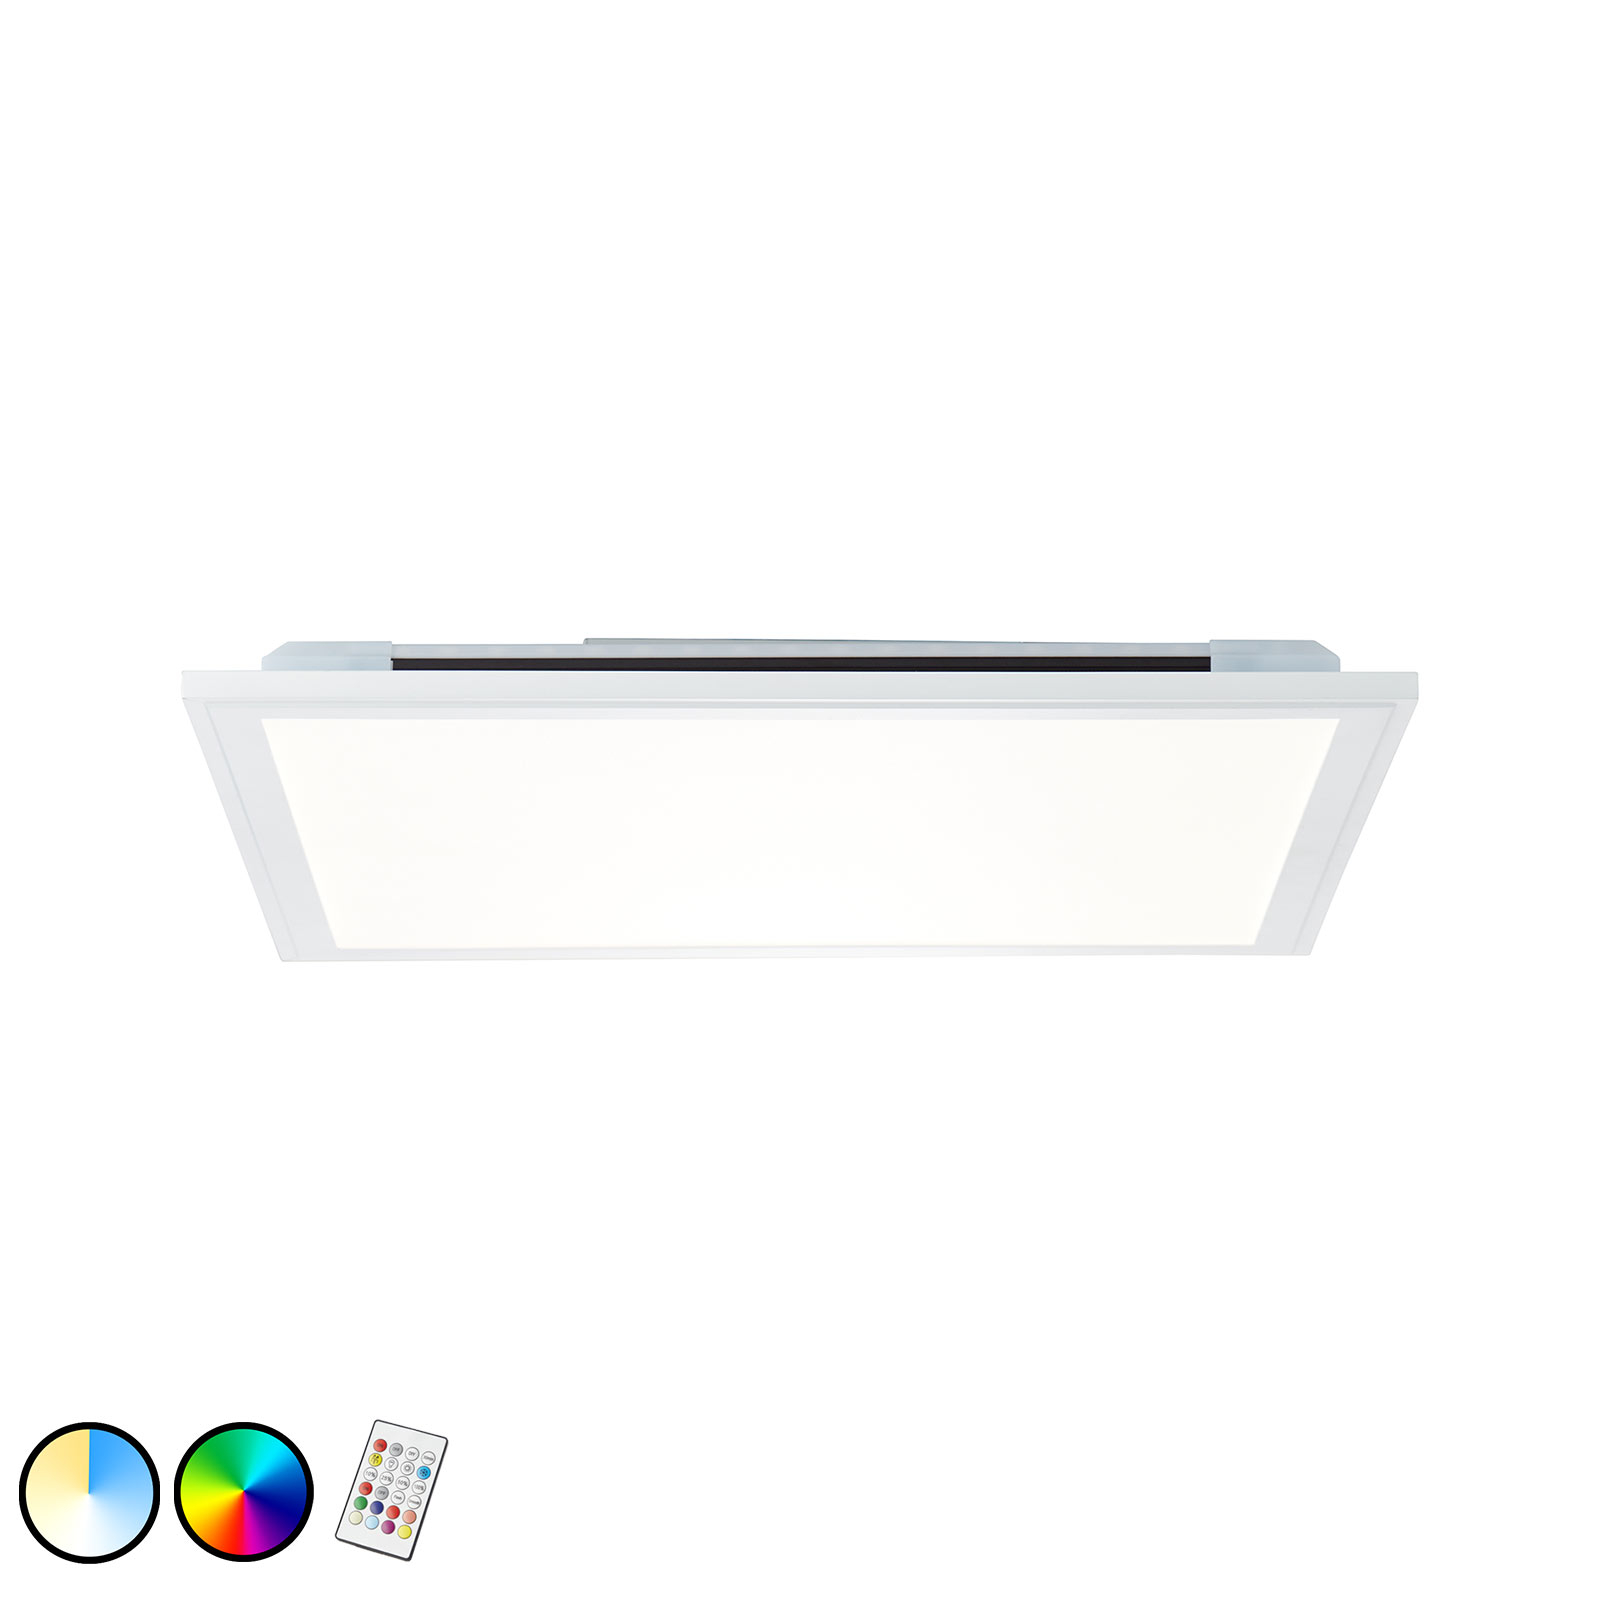 LED-taklampe Allie, 40x40 cm